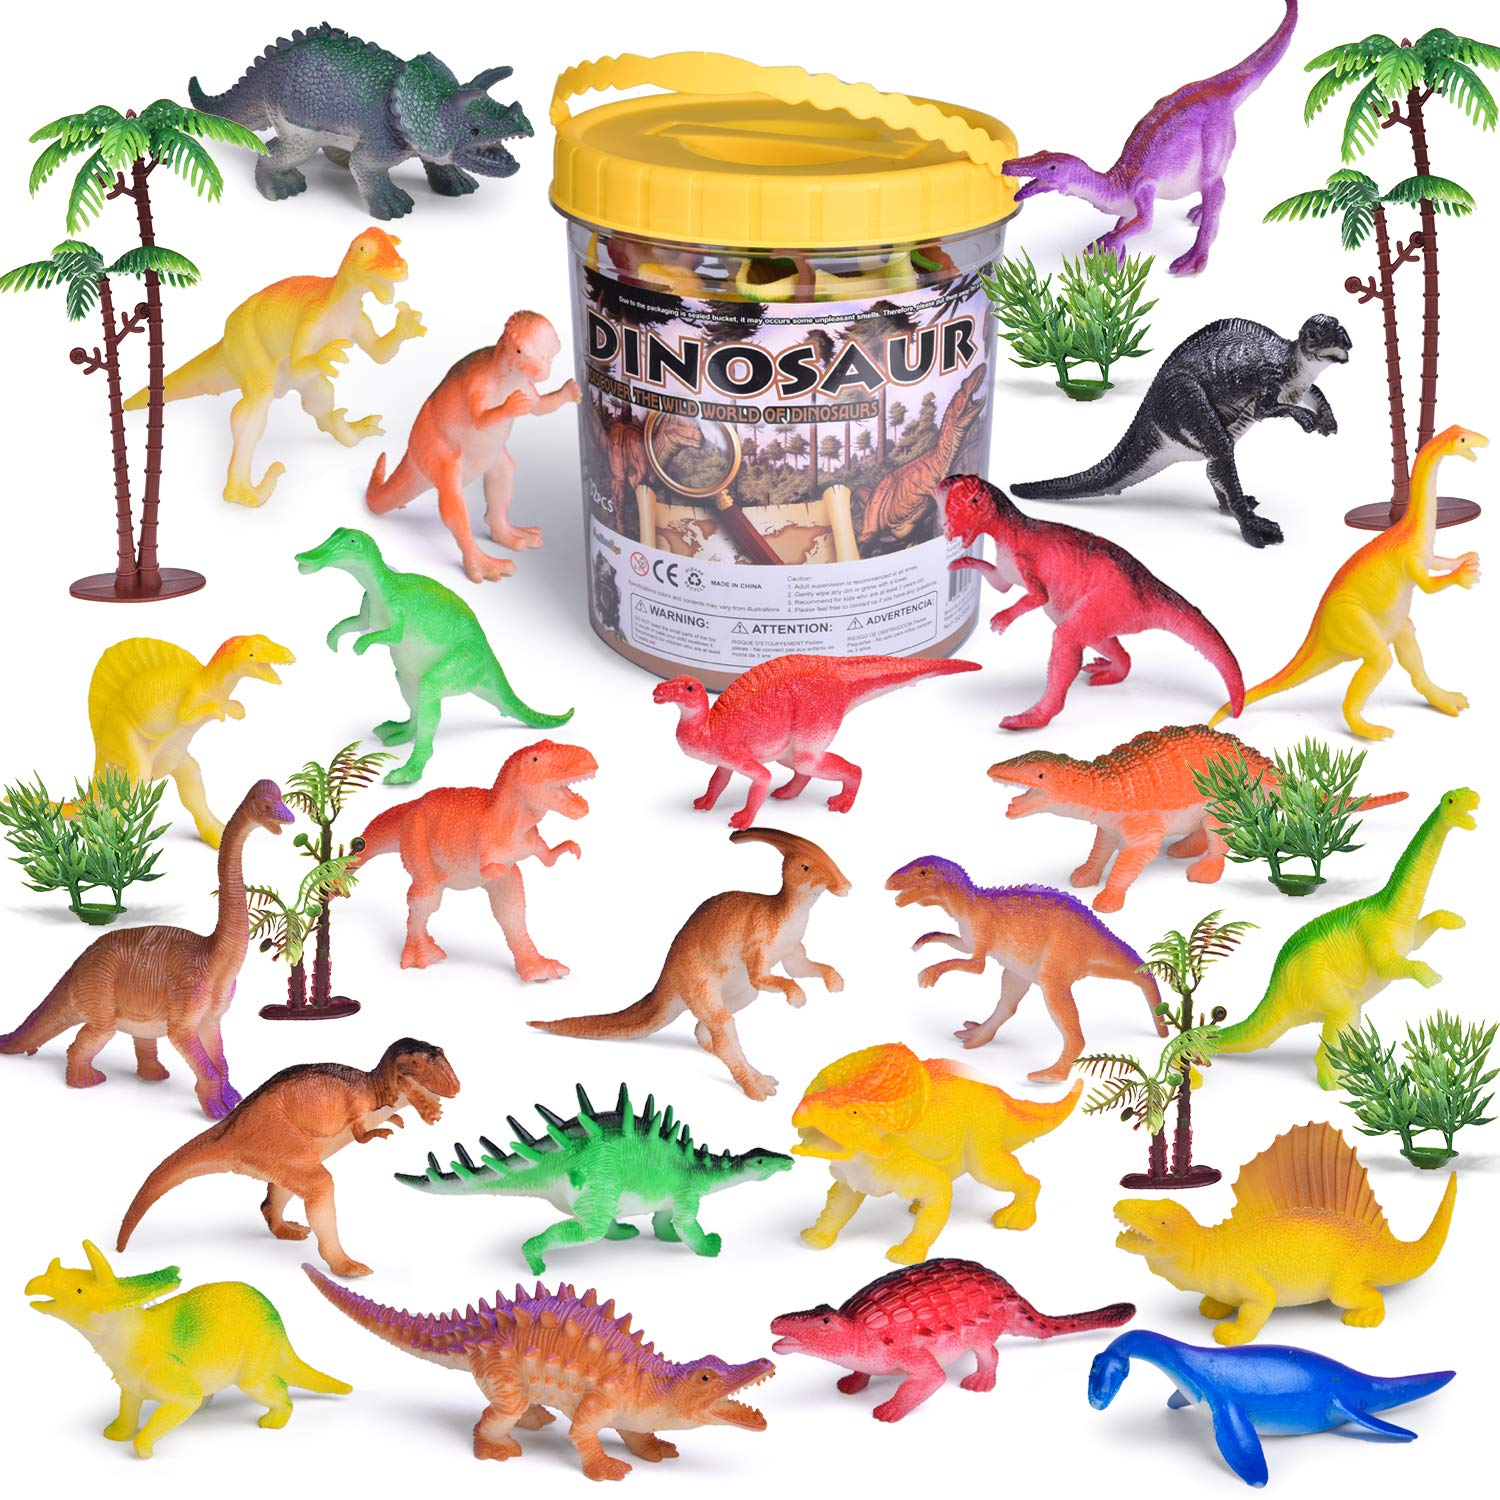 FUN LITTLE TOYS 32PCs Mini Toy Dinosaurs, Best Choices for Goodie Bag Fillers, Kids Prizes, Kids Party Favors